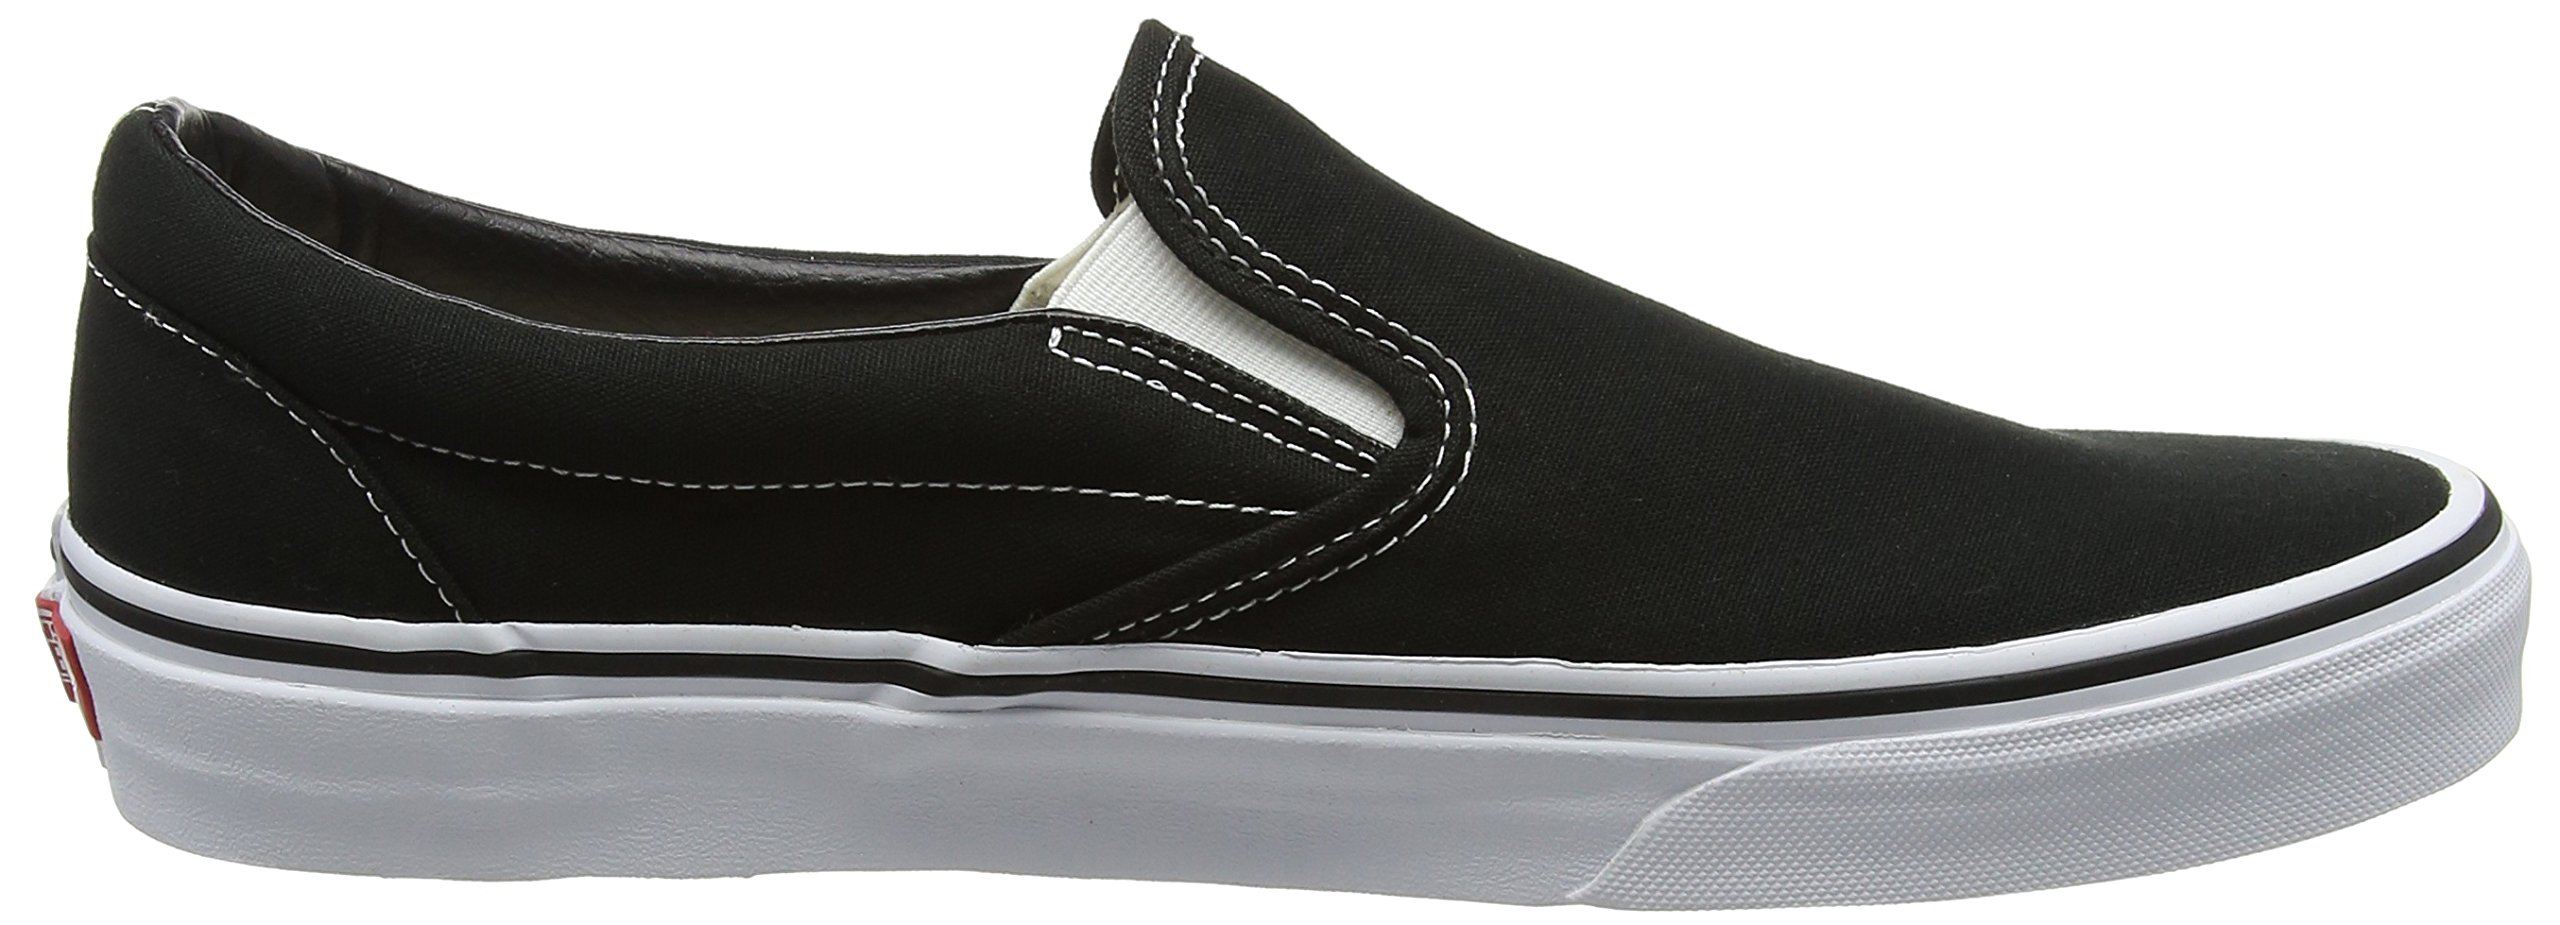 Vans Unisex Classic Slip-ON (9.5 Women /8 Men M US) by Vans (Image #6)